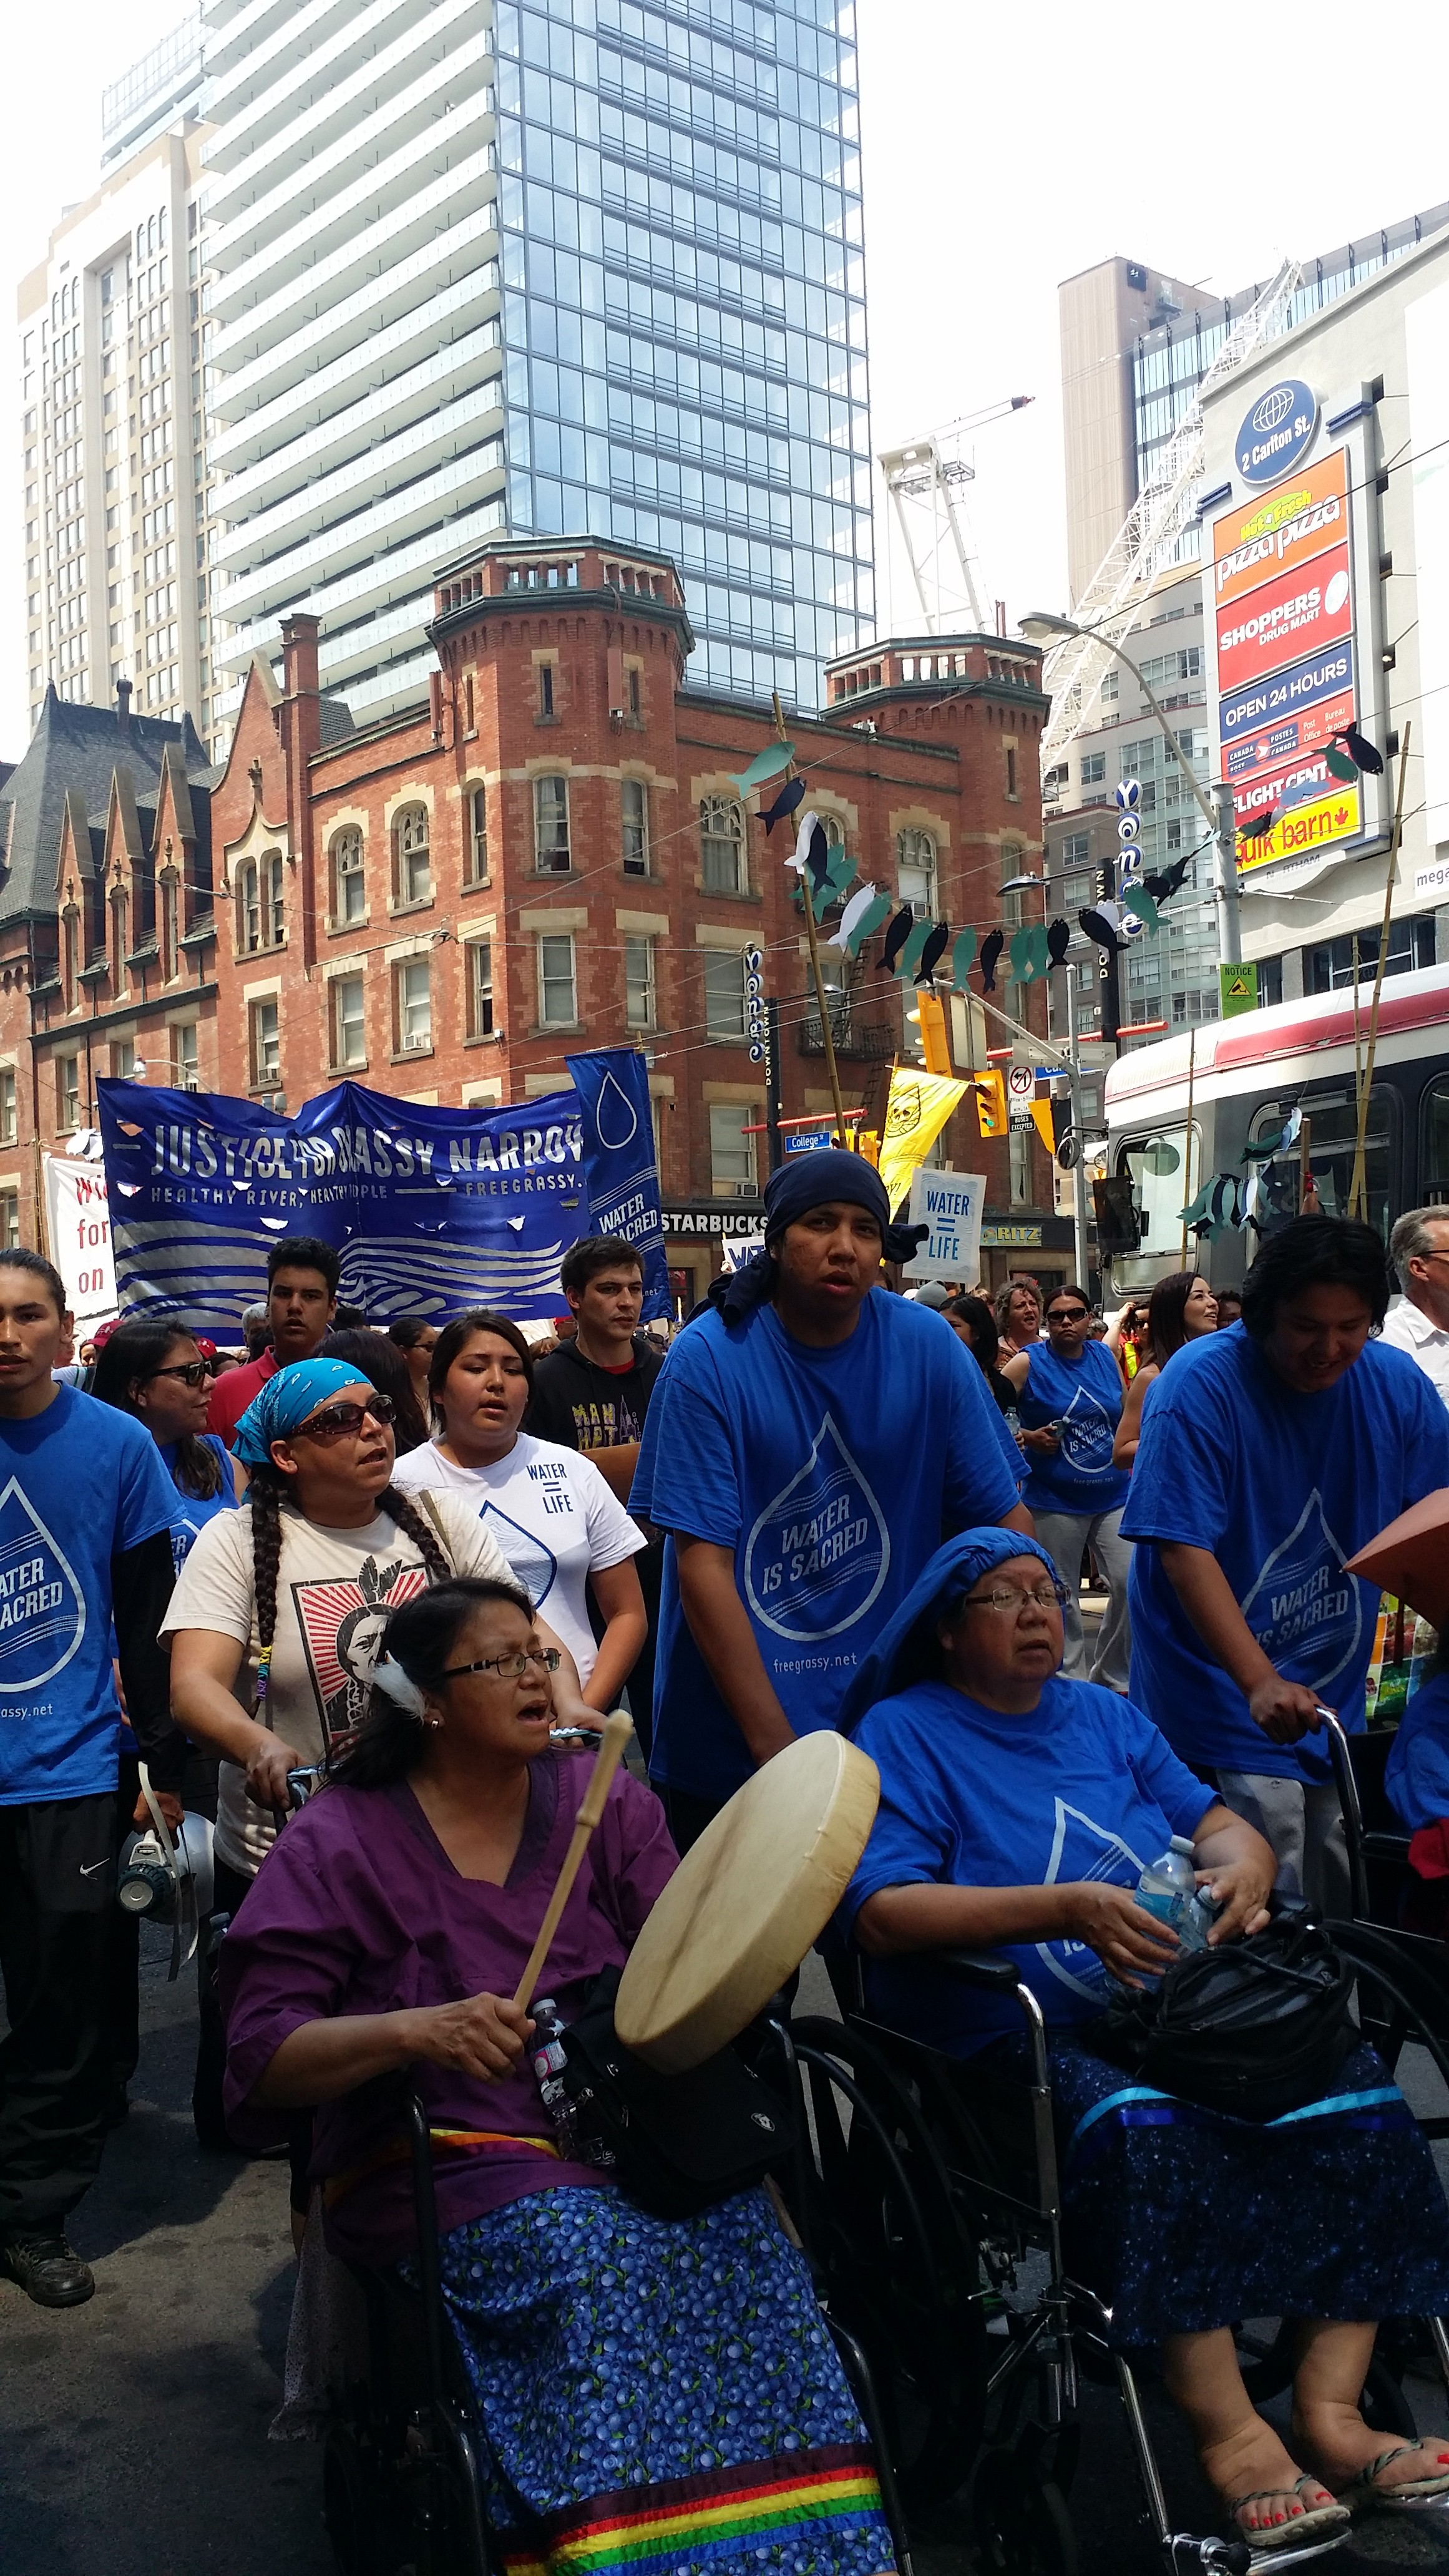 Grandmothers and youth lead the march for justice for Grassy Narrows FN